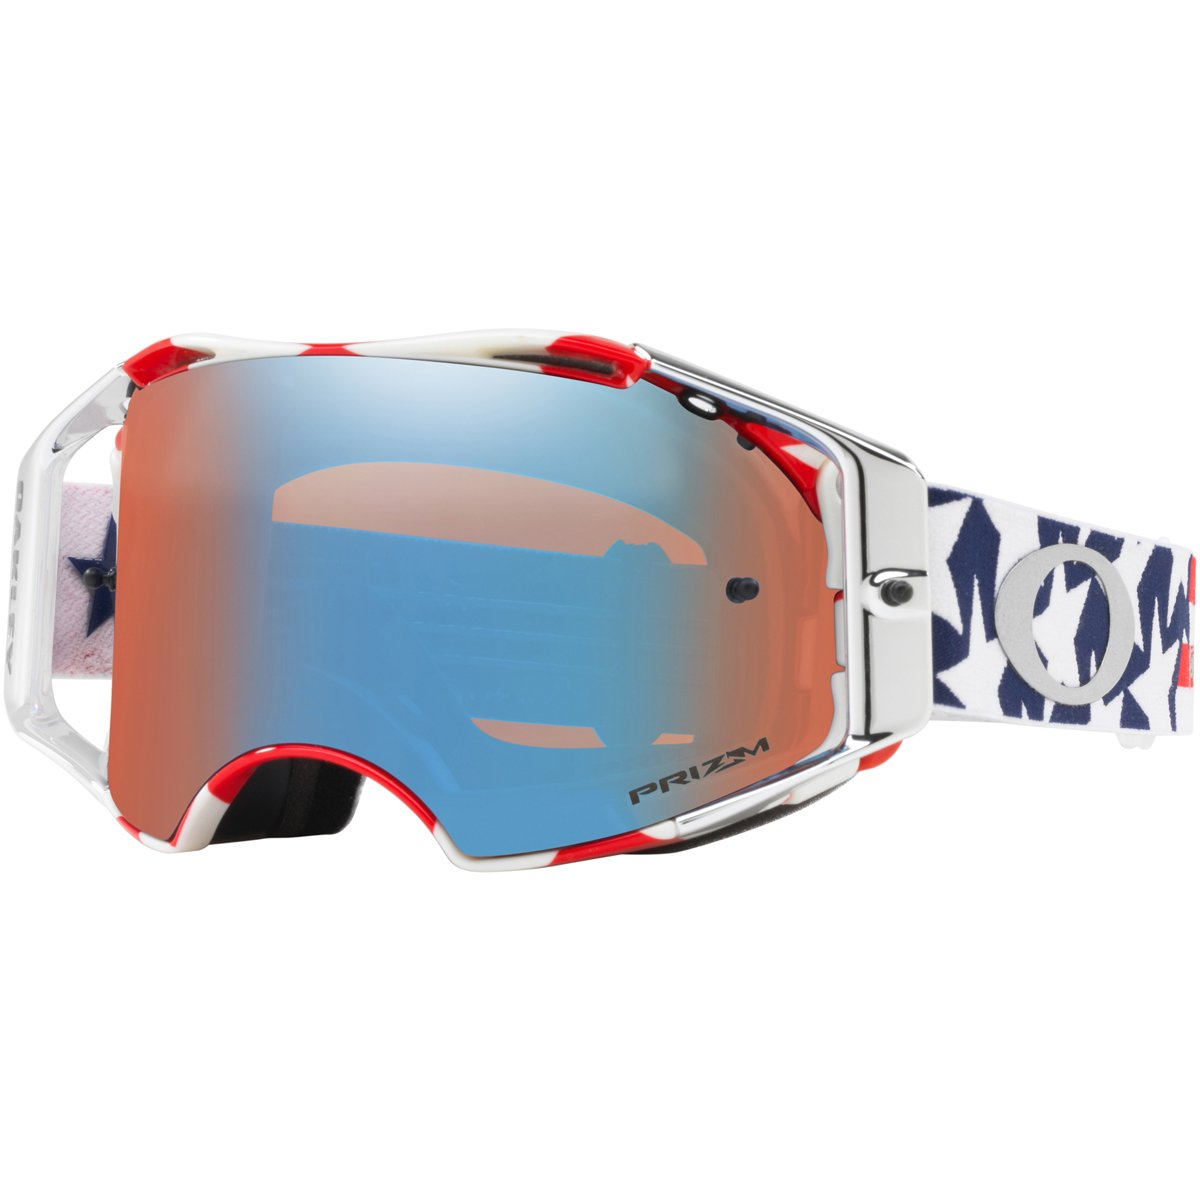 Oakley Unisex-Adult Goggles (White, Medium)